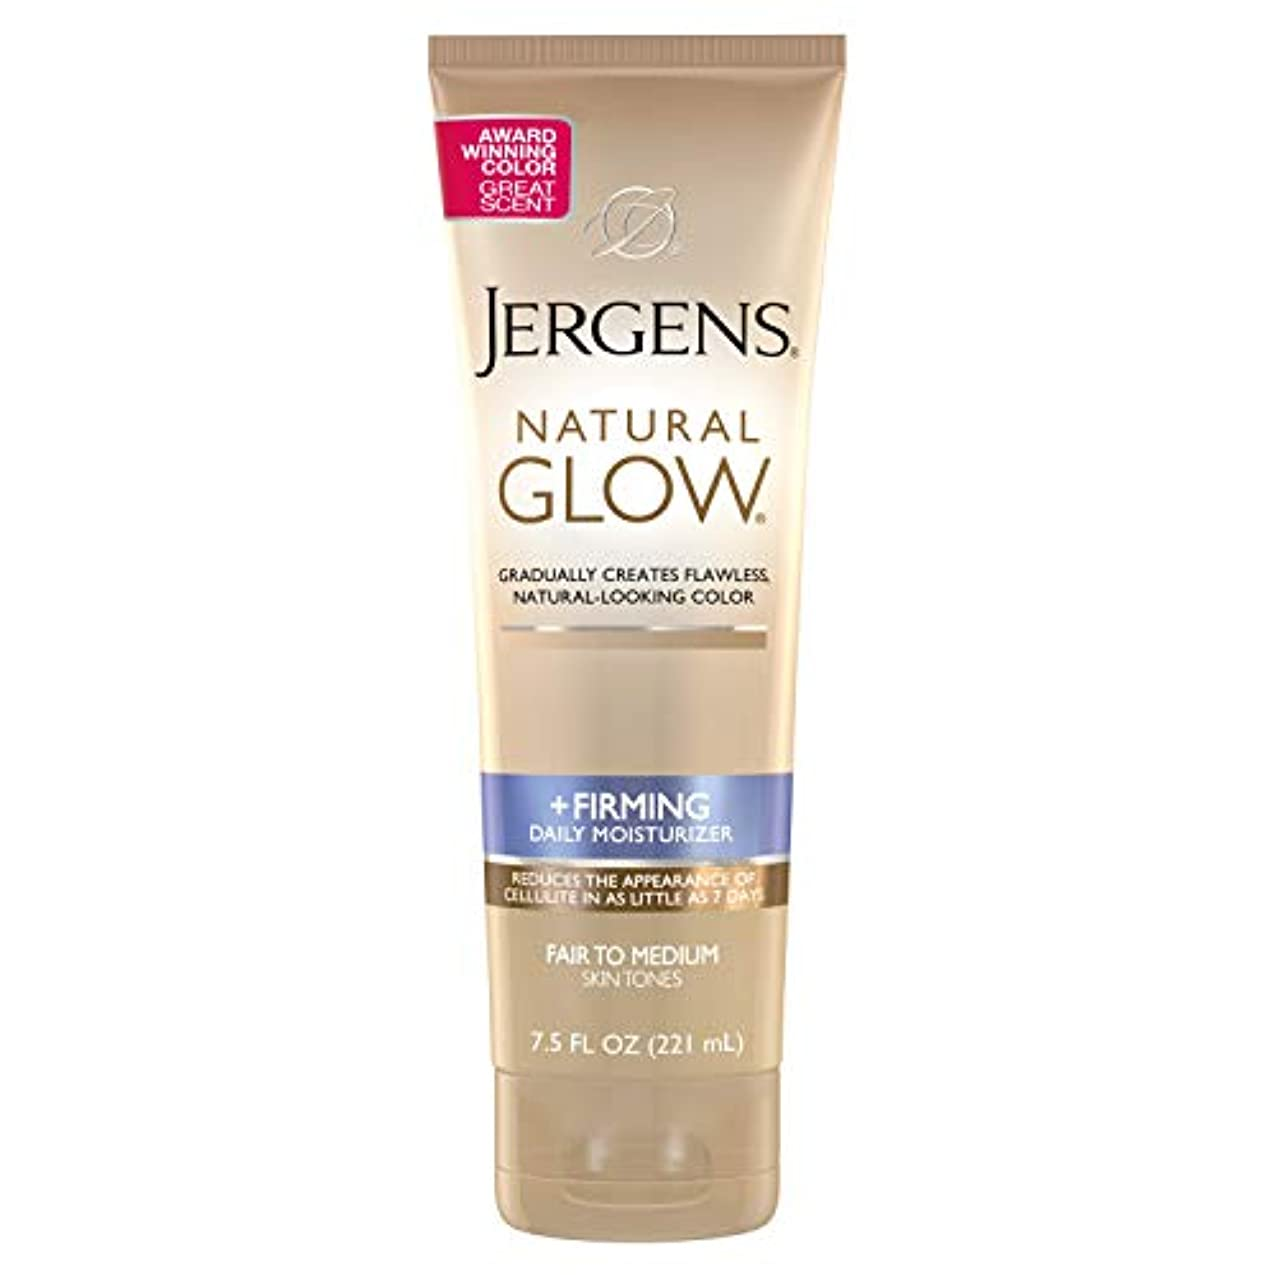 ドラッグわずかな通りNatural Glow Firming Moisturizer for Fair to Mediu Jergens 7.5 oz Moisturizer For Unisex (並行輸入品)